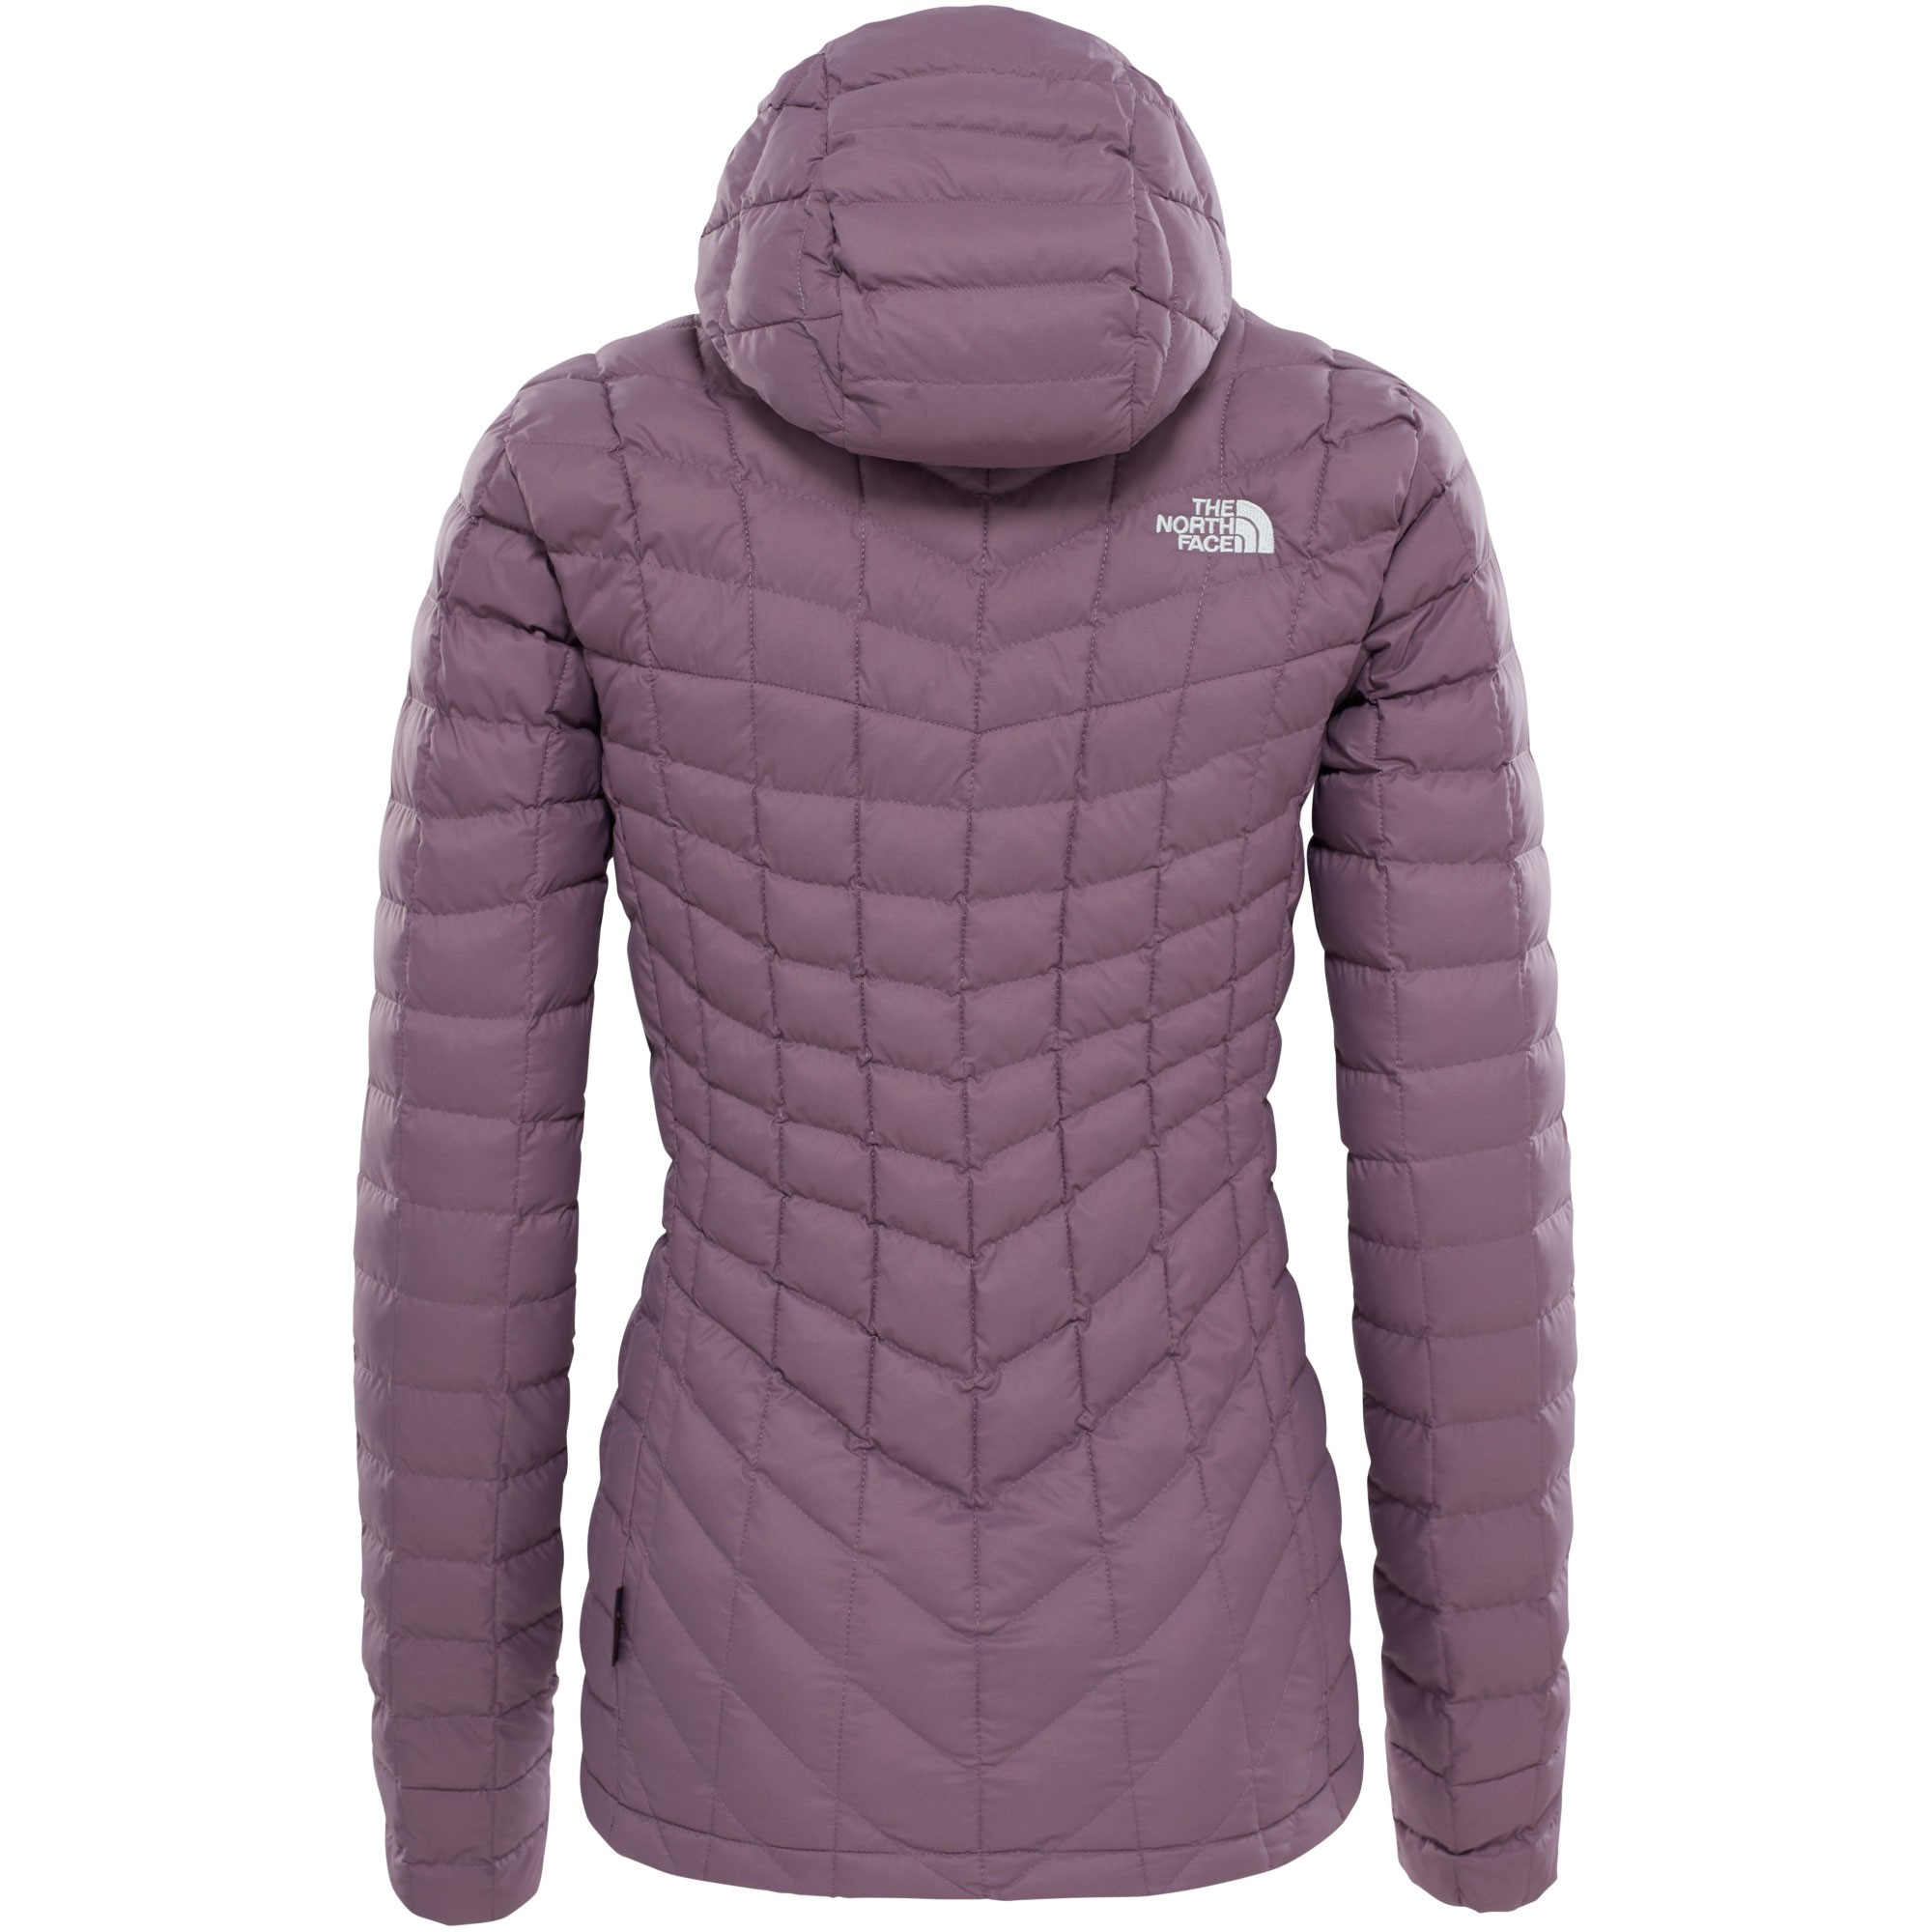 The-North-Face-Womens-Thermoball-Hoodie-Black-Plum